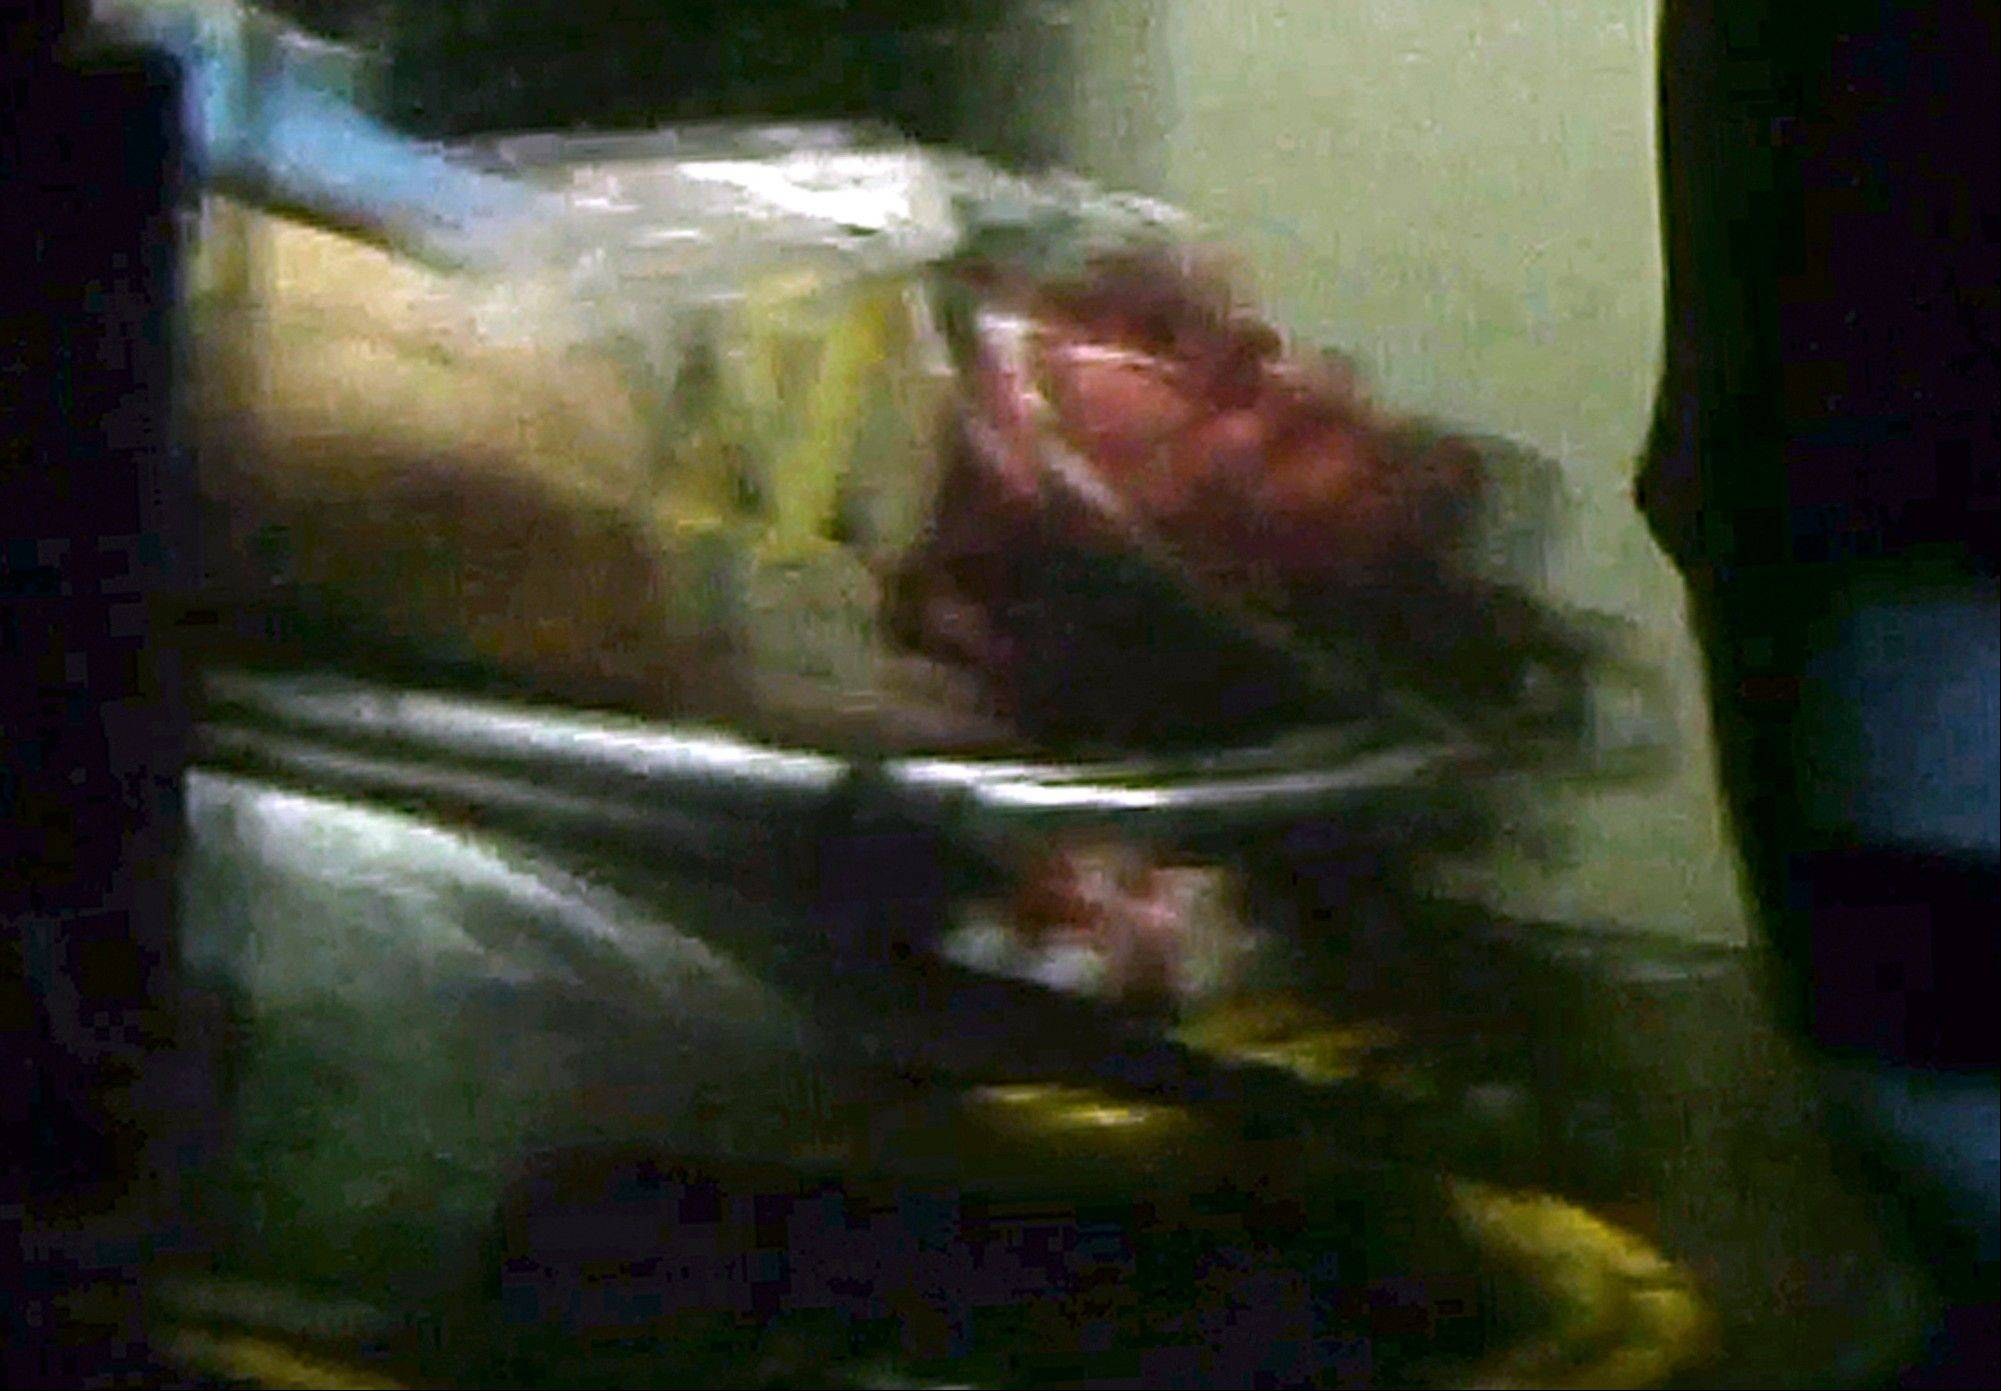 This still frame from video shows Boston Marathon bombing suspect Dzhokhar Tsarnaev visible through an ambulance after he was captured in Watertown, Mass., Friday, April 19, 2013. The 19-year-old college student wanted in the Boston Marathon bombings was taken into custody Friday evening after a manhunt that left the city virtually paralyzed and his older brother and accomplice dead.